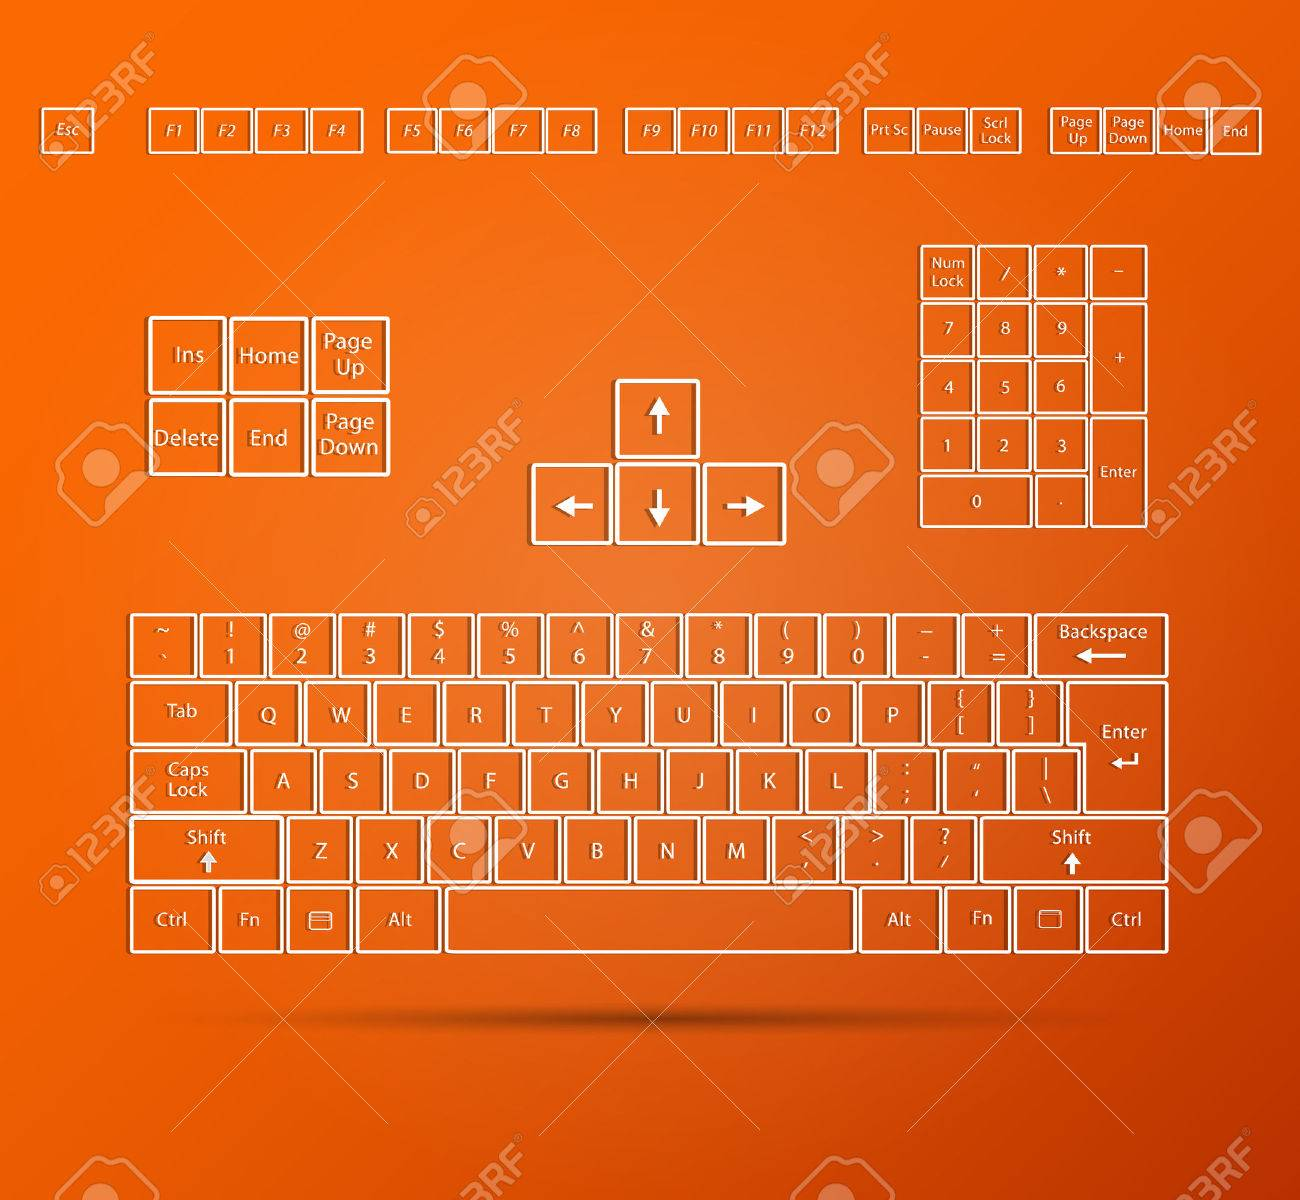 Illustration of an abstract keyboard on a colorful orange background. - 34773922